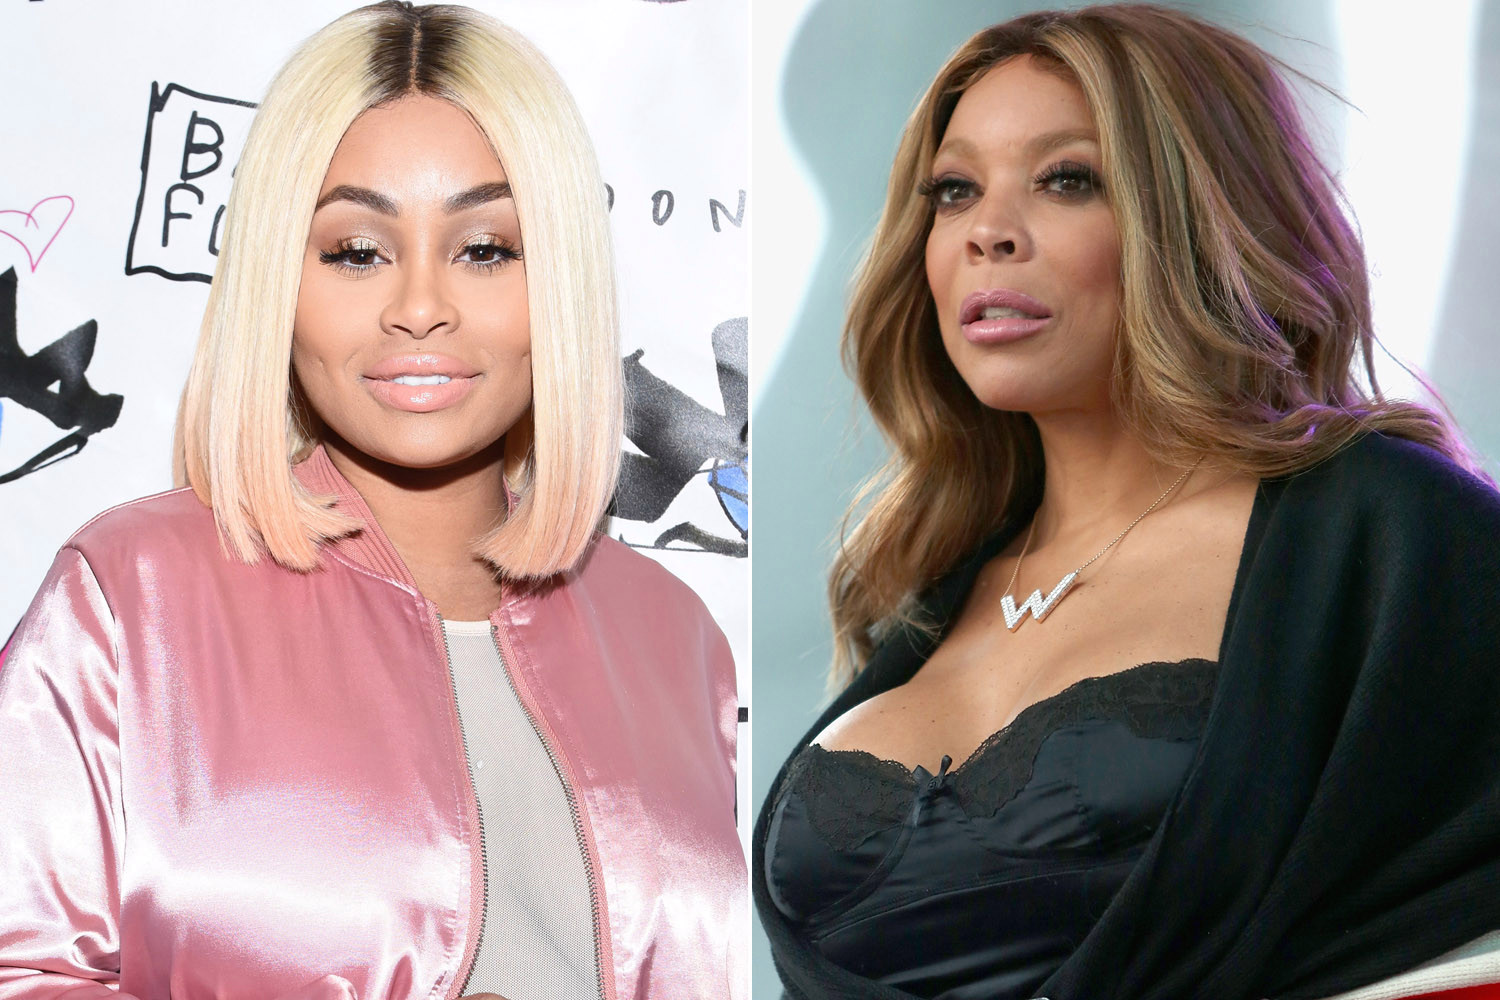 Blac Chyna | Blac Chyna wanted Rob Kardashian to 'see his worth'